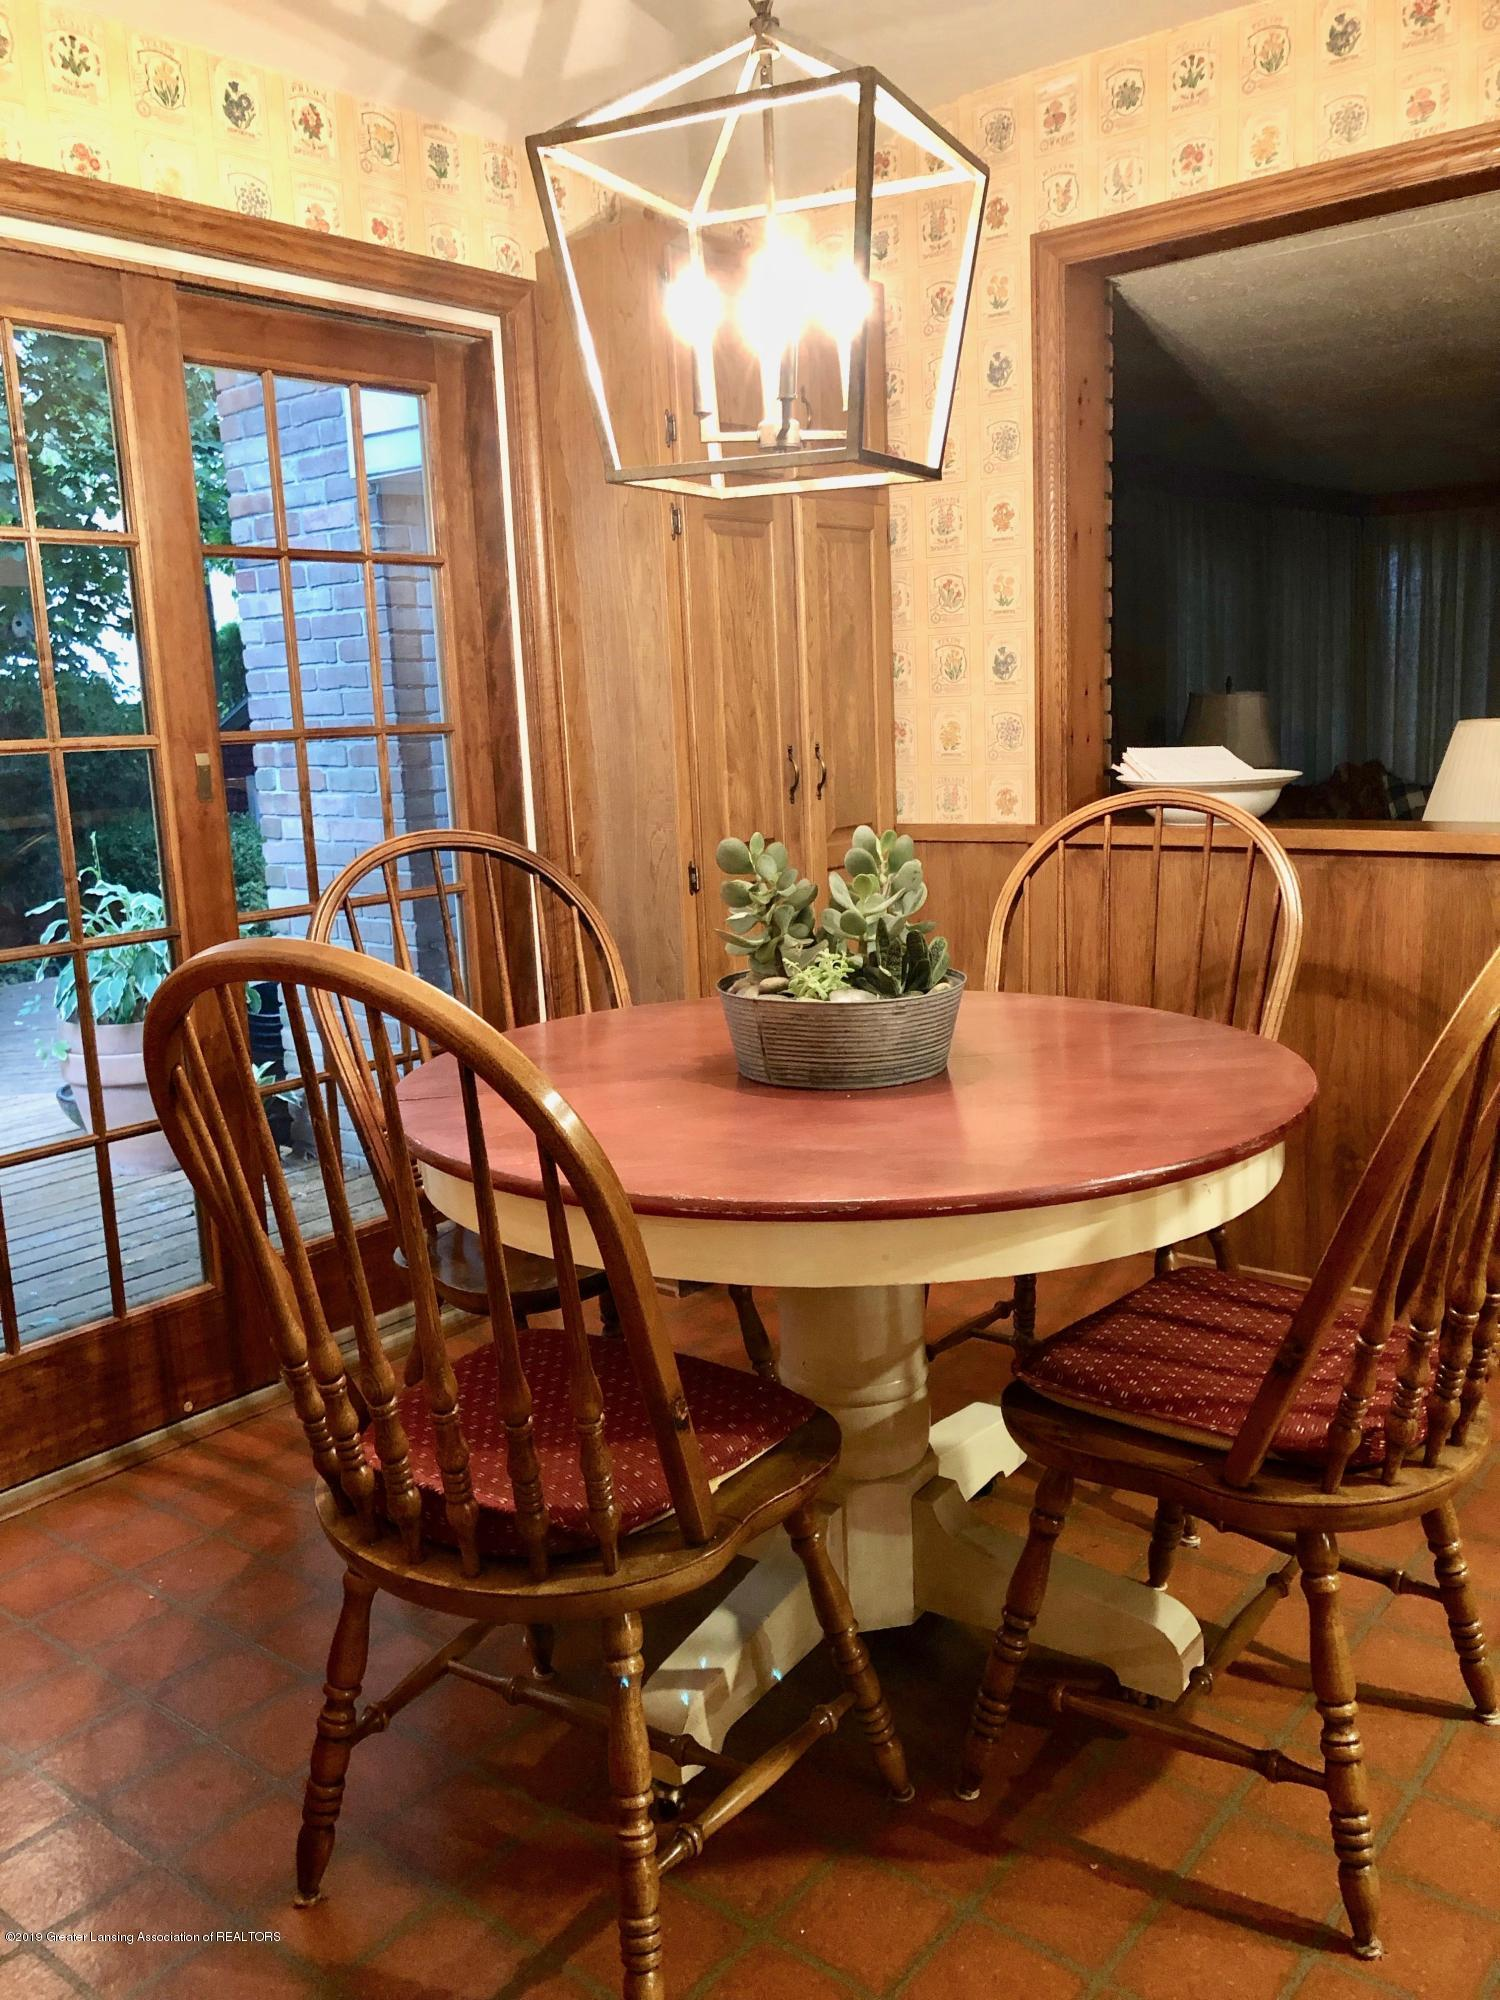 633 Butterfield Dr - Dining Area - 15